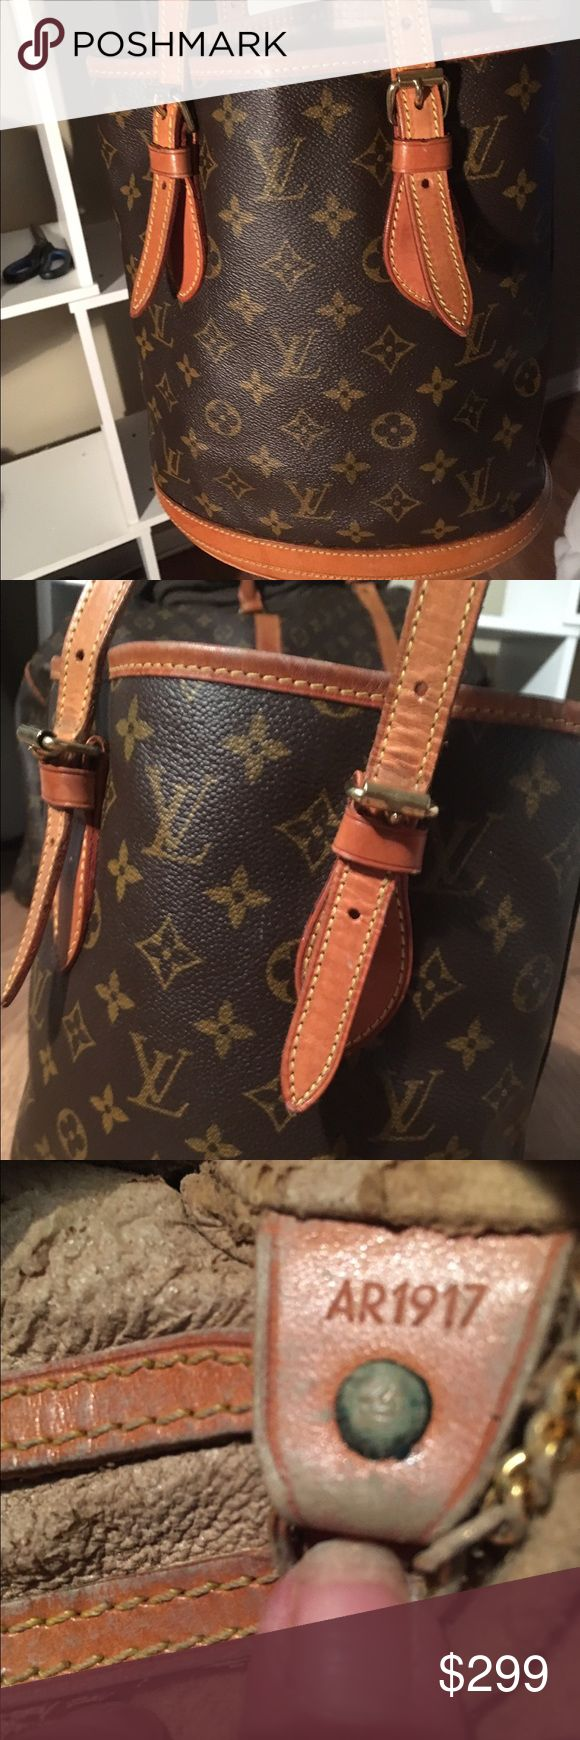 LOUIS VUITTON BUCKET BAG. 💯% AUTHENTICITY GUARANTEED. LOUIS VUITTON BUCKET BAG IS IN EXCELLENT CONDITION OUTSIDE BUT.....THE INSDE LINER IS STICKY AND NEEDS TO BE REPLACED. Louis Vuitton Bags Totes